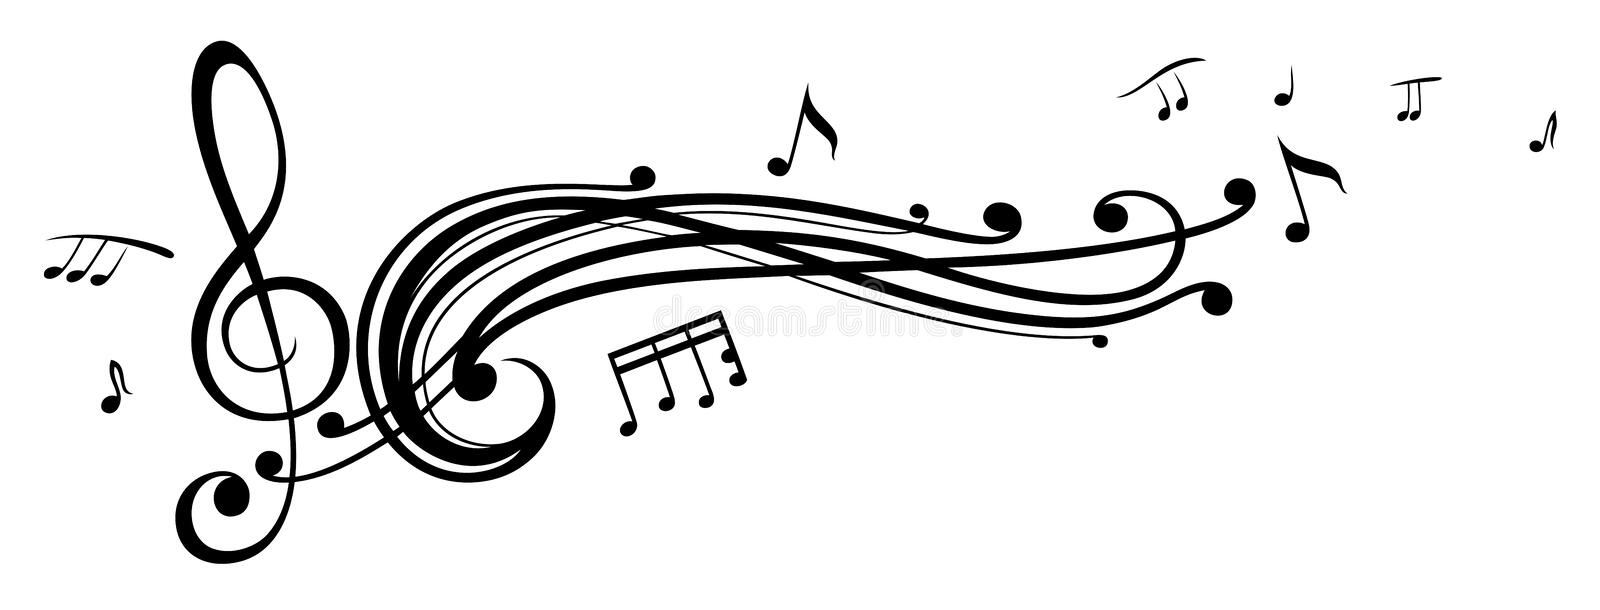 Music, music notes, clef. Clef with music notes, design element vector illustration